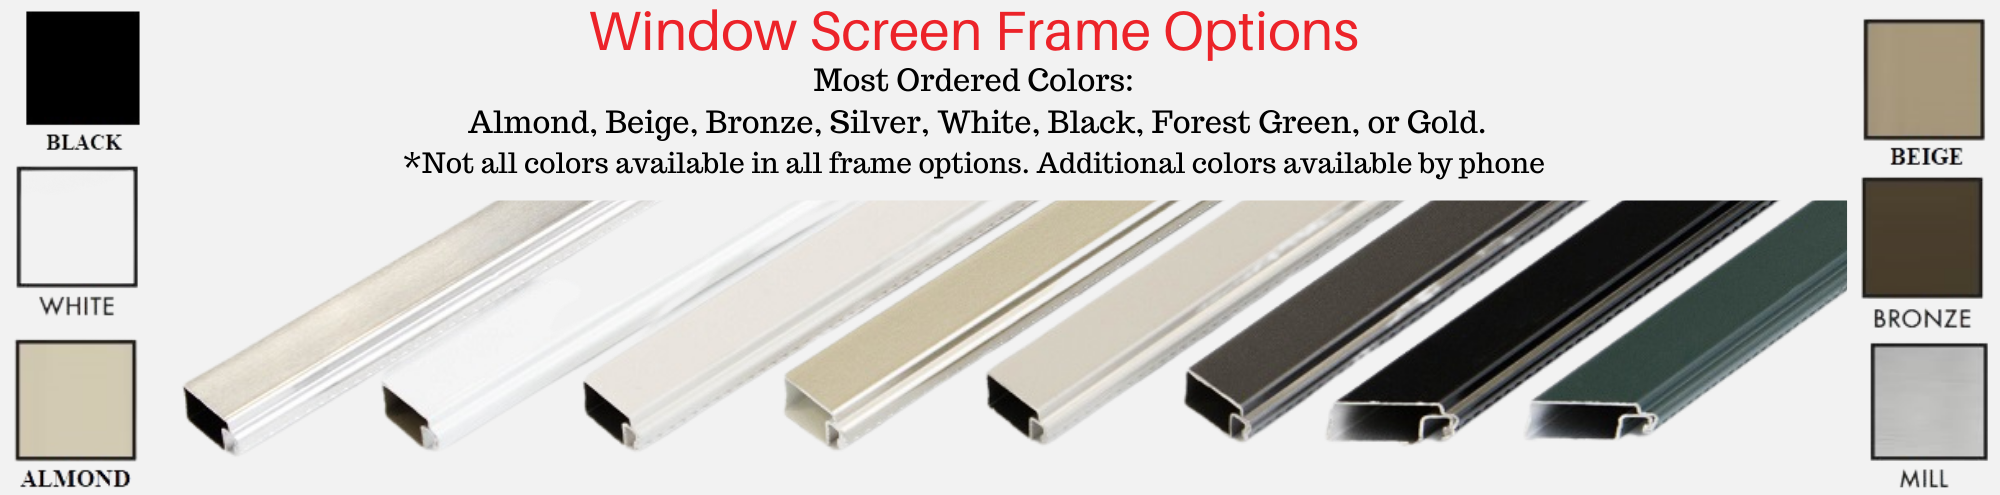 frame-color-options.png